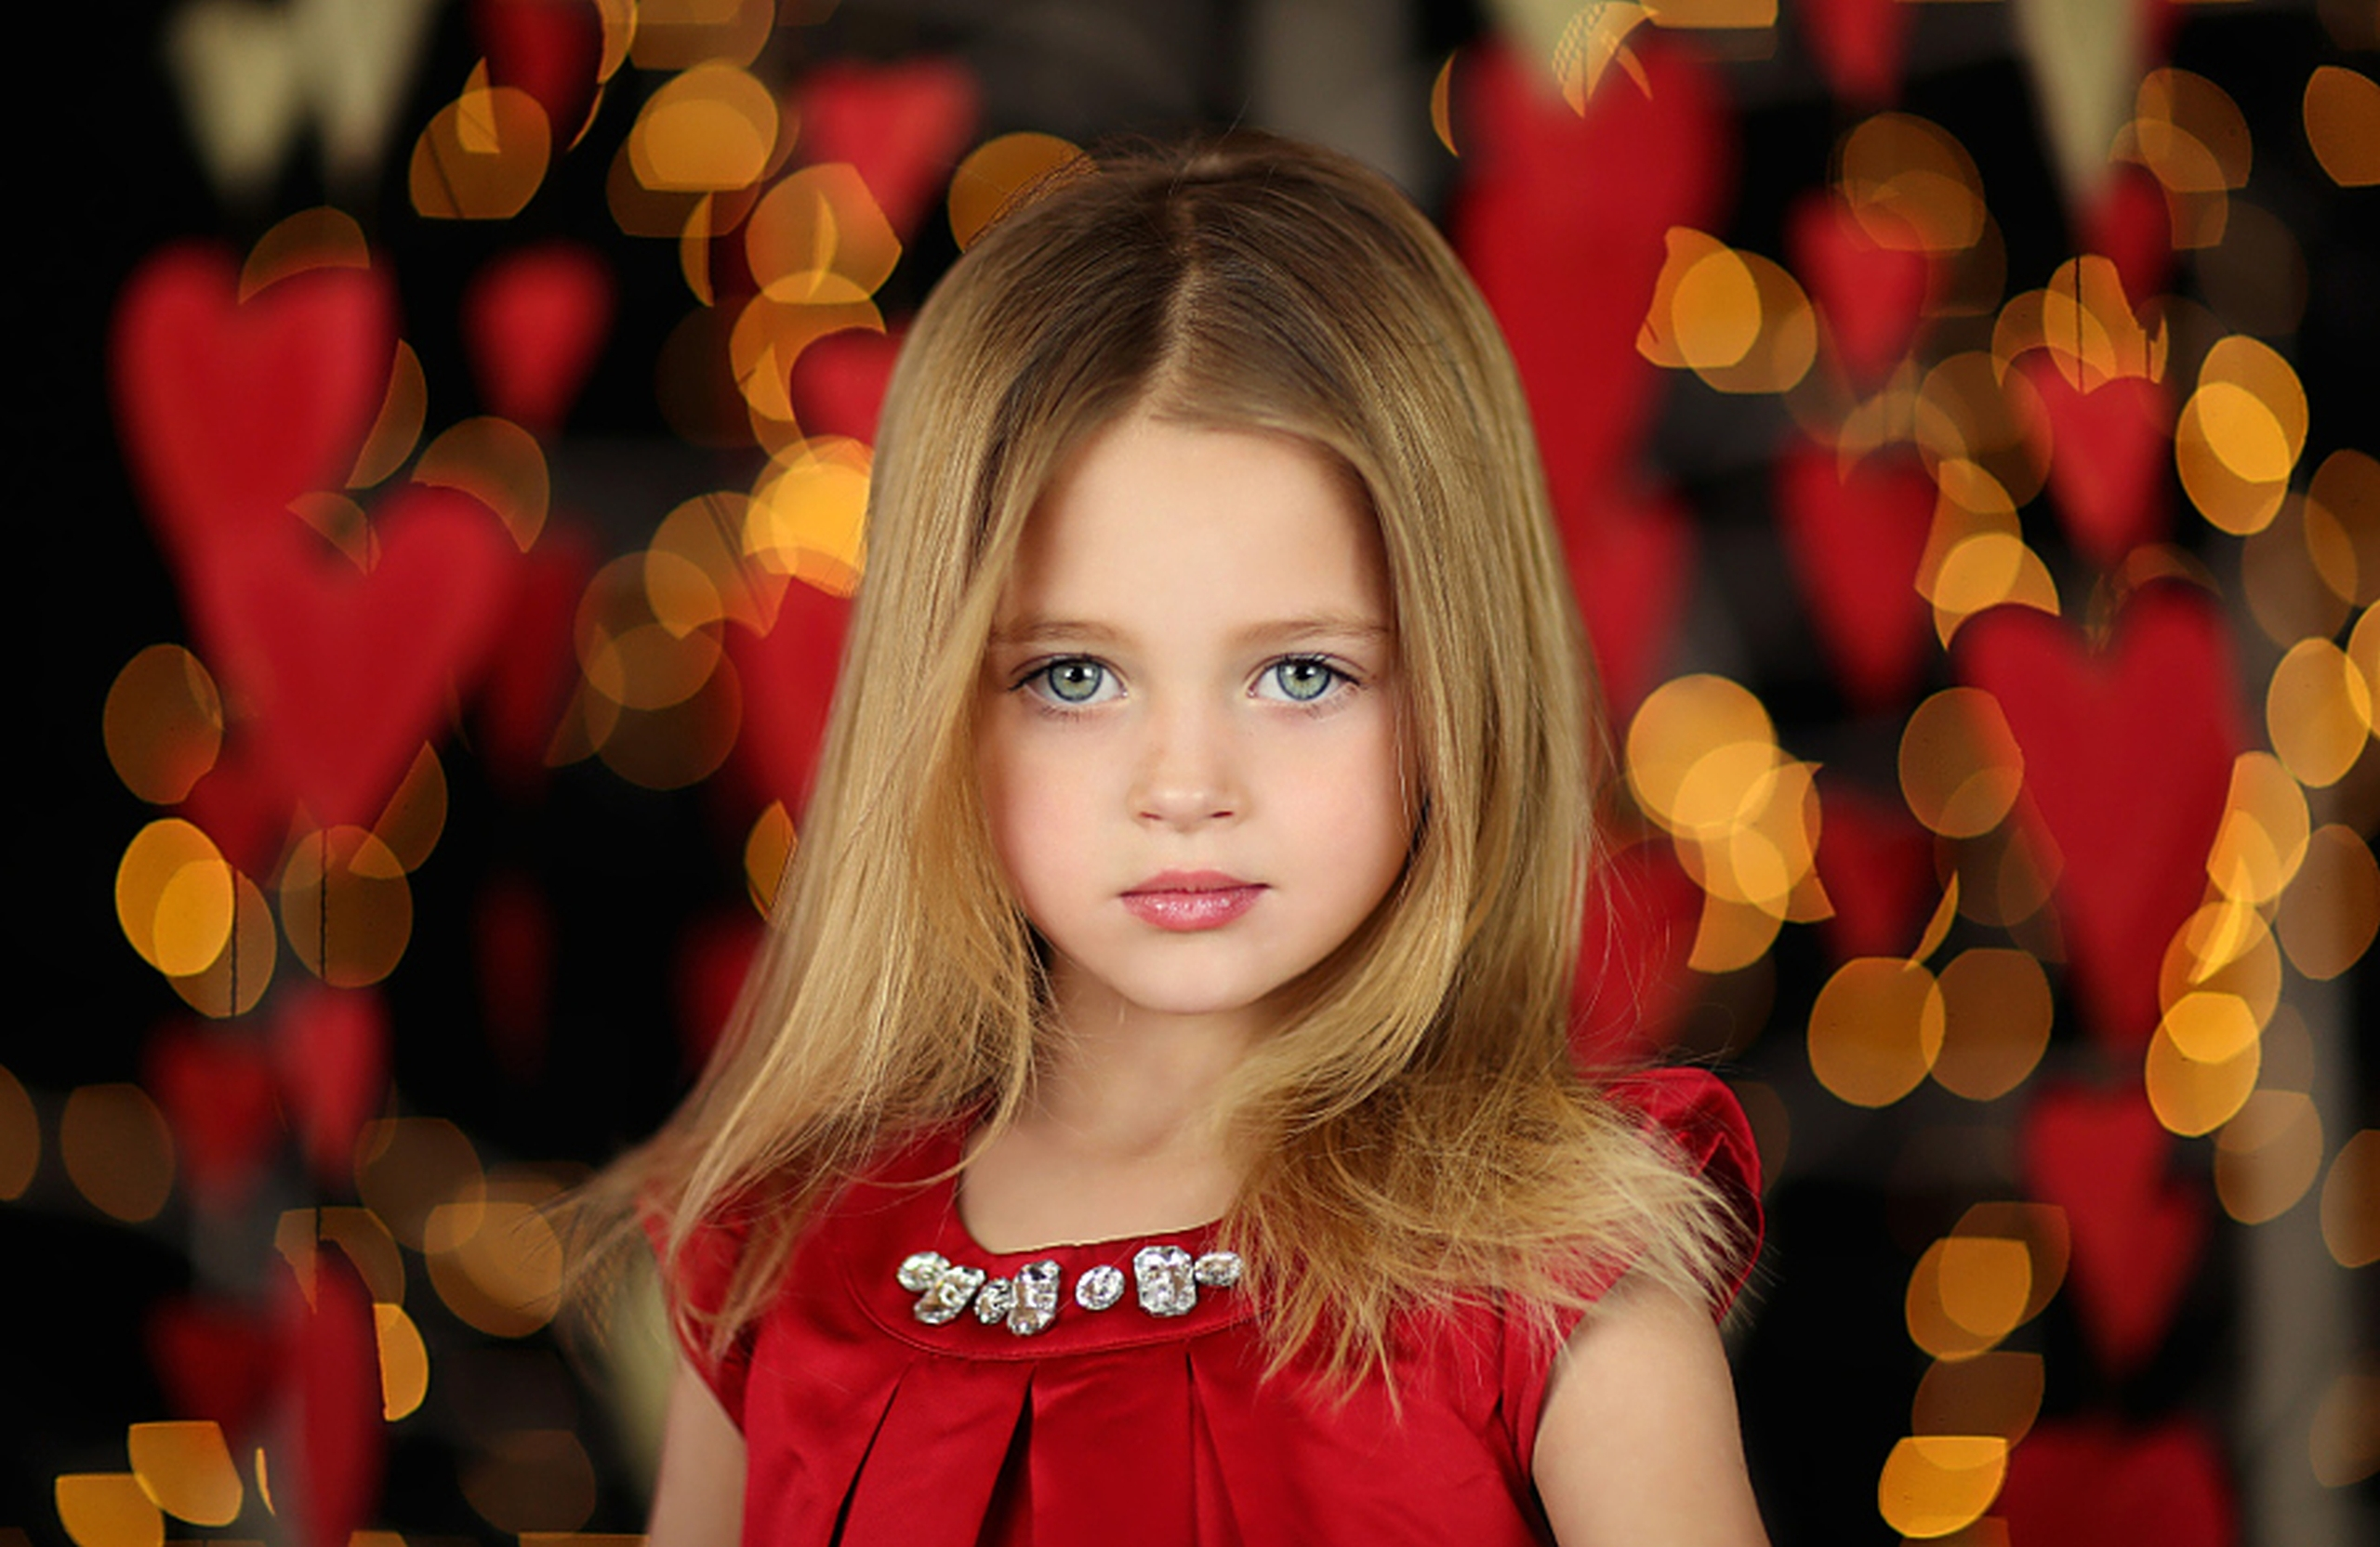 313 Little Girl HD Wallpapers | Background Images - Wallpaper Abyss